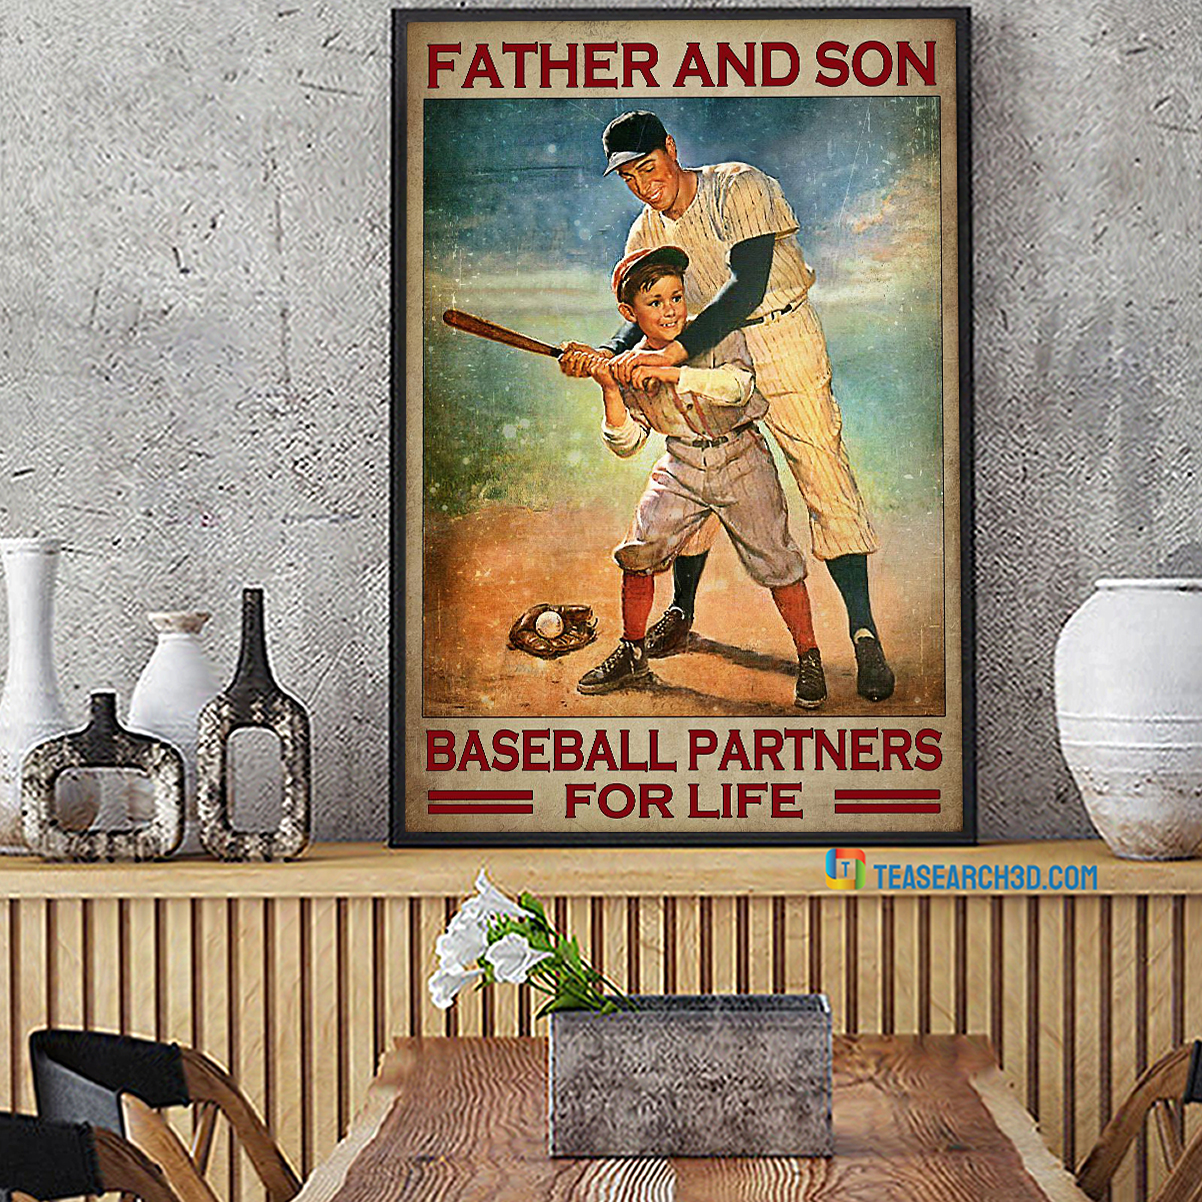 Father and son baseball partners for life poster A2